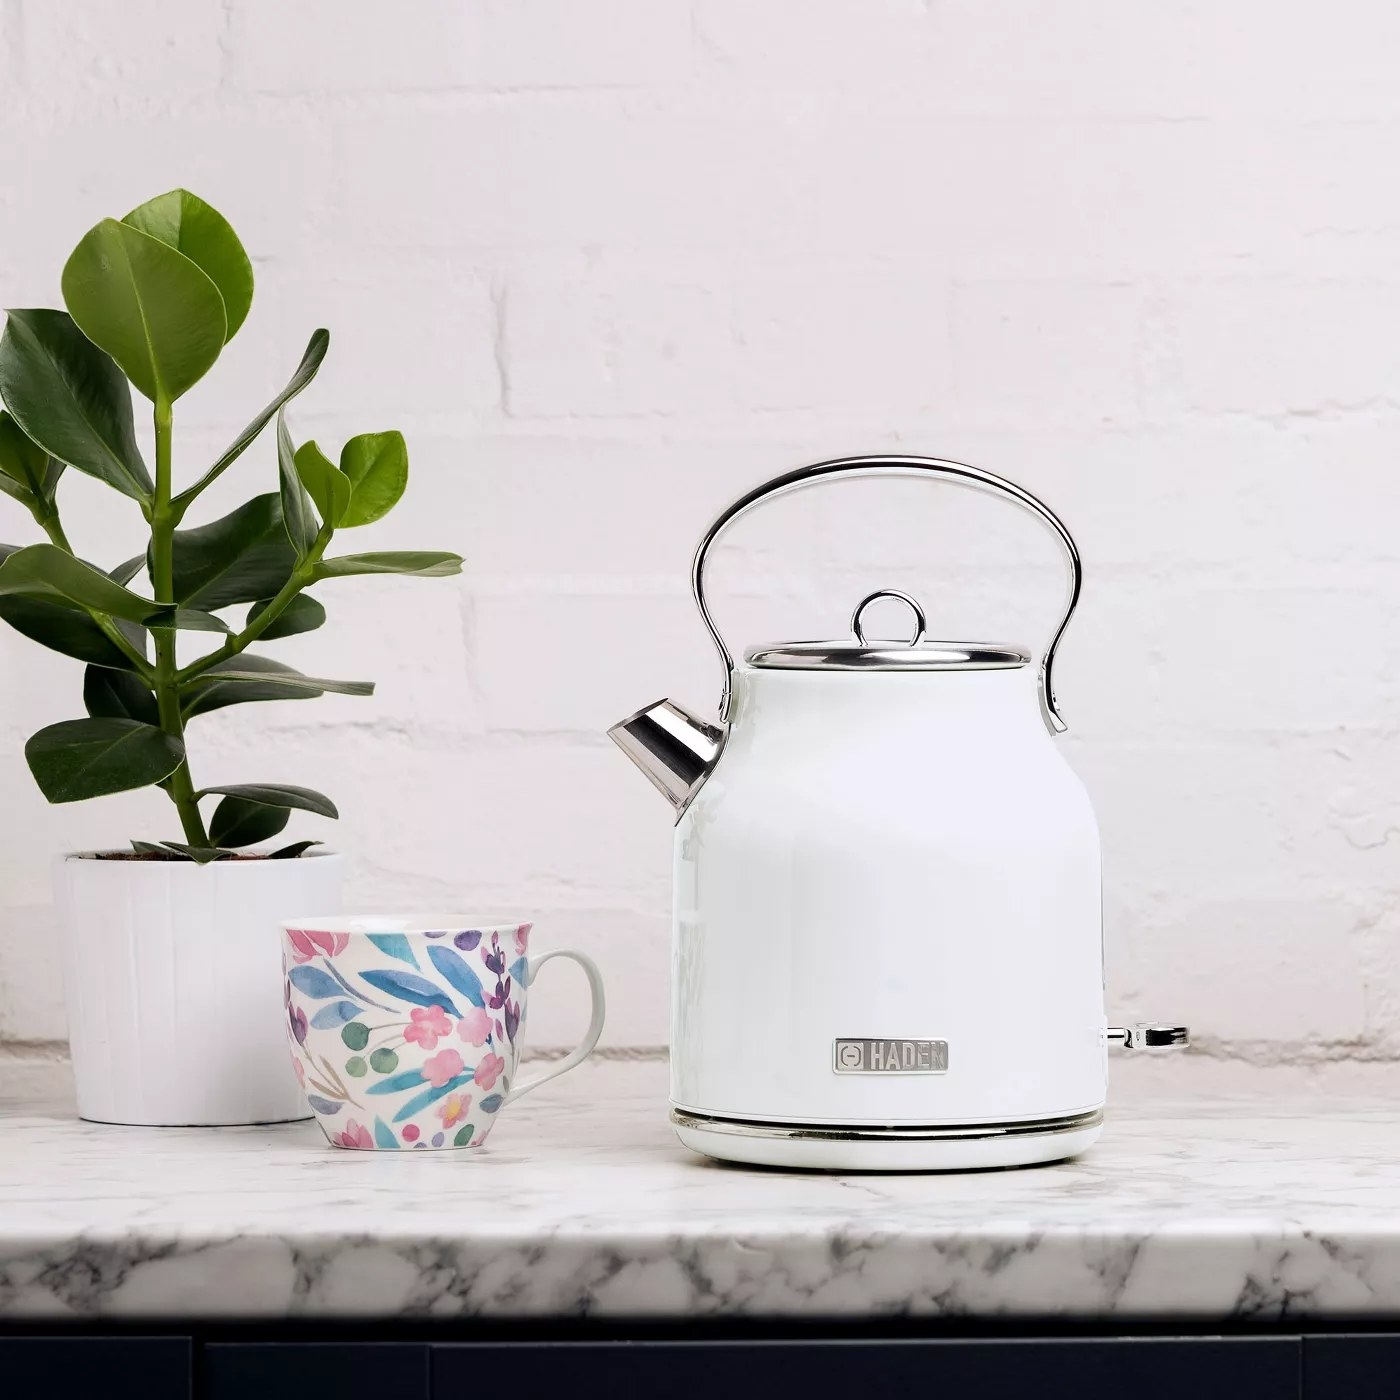 The white Haden electric kettle